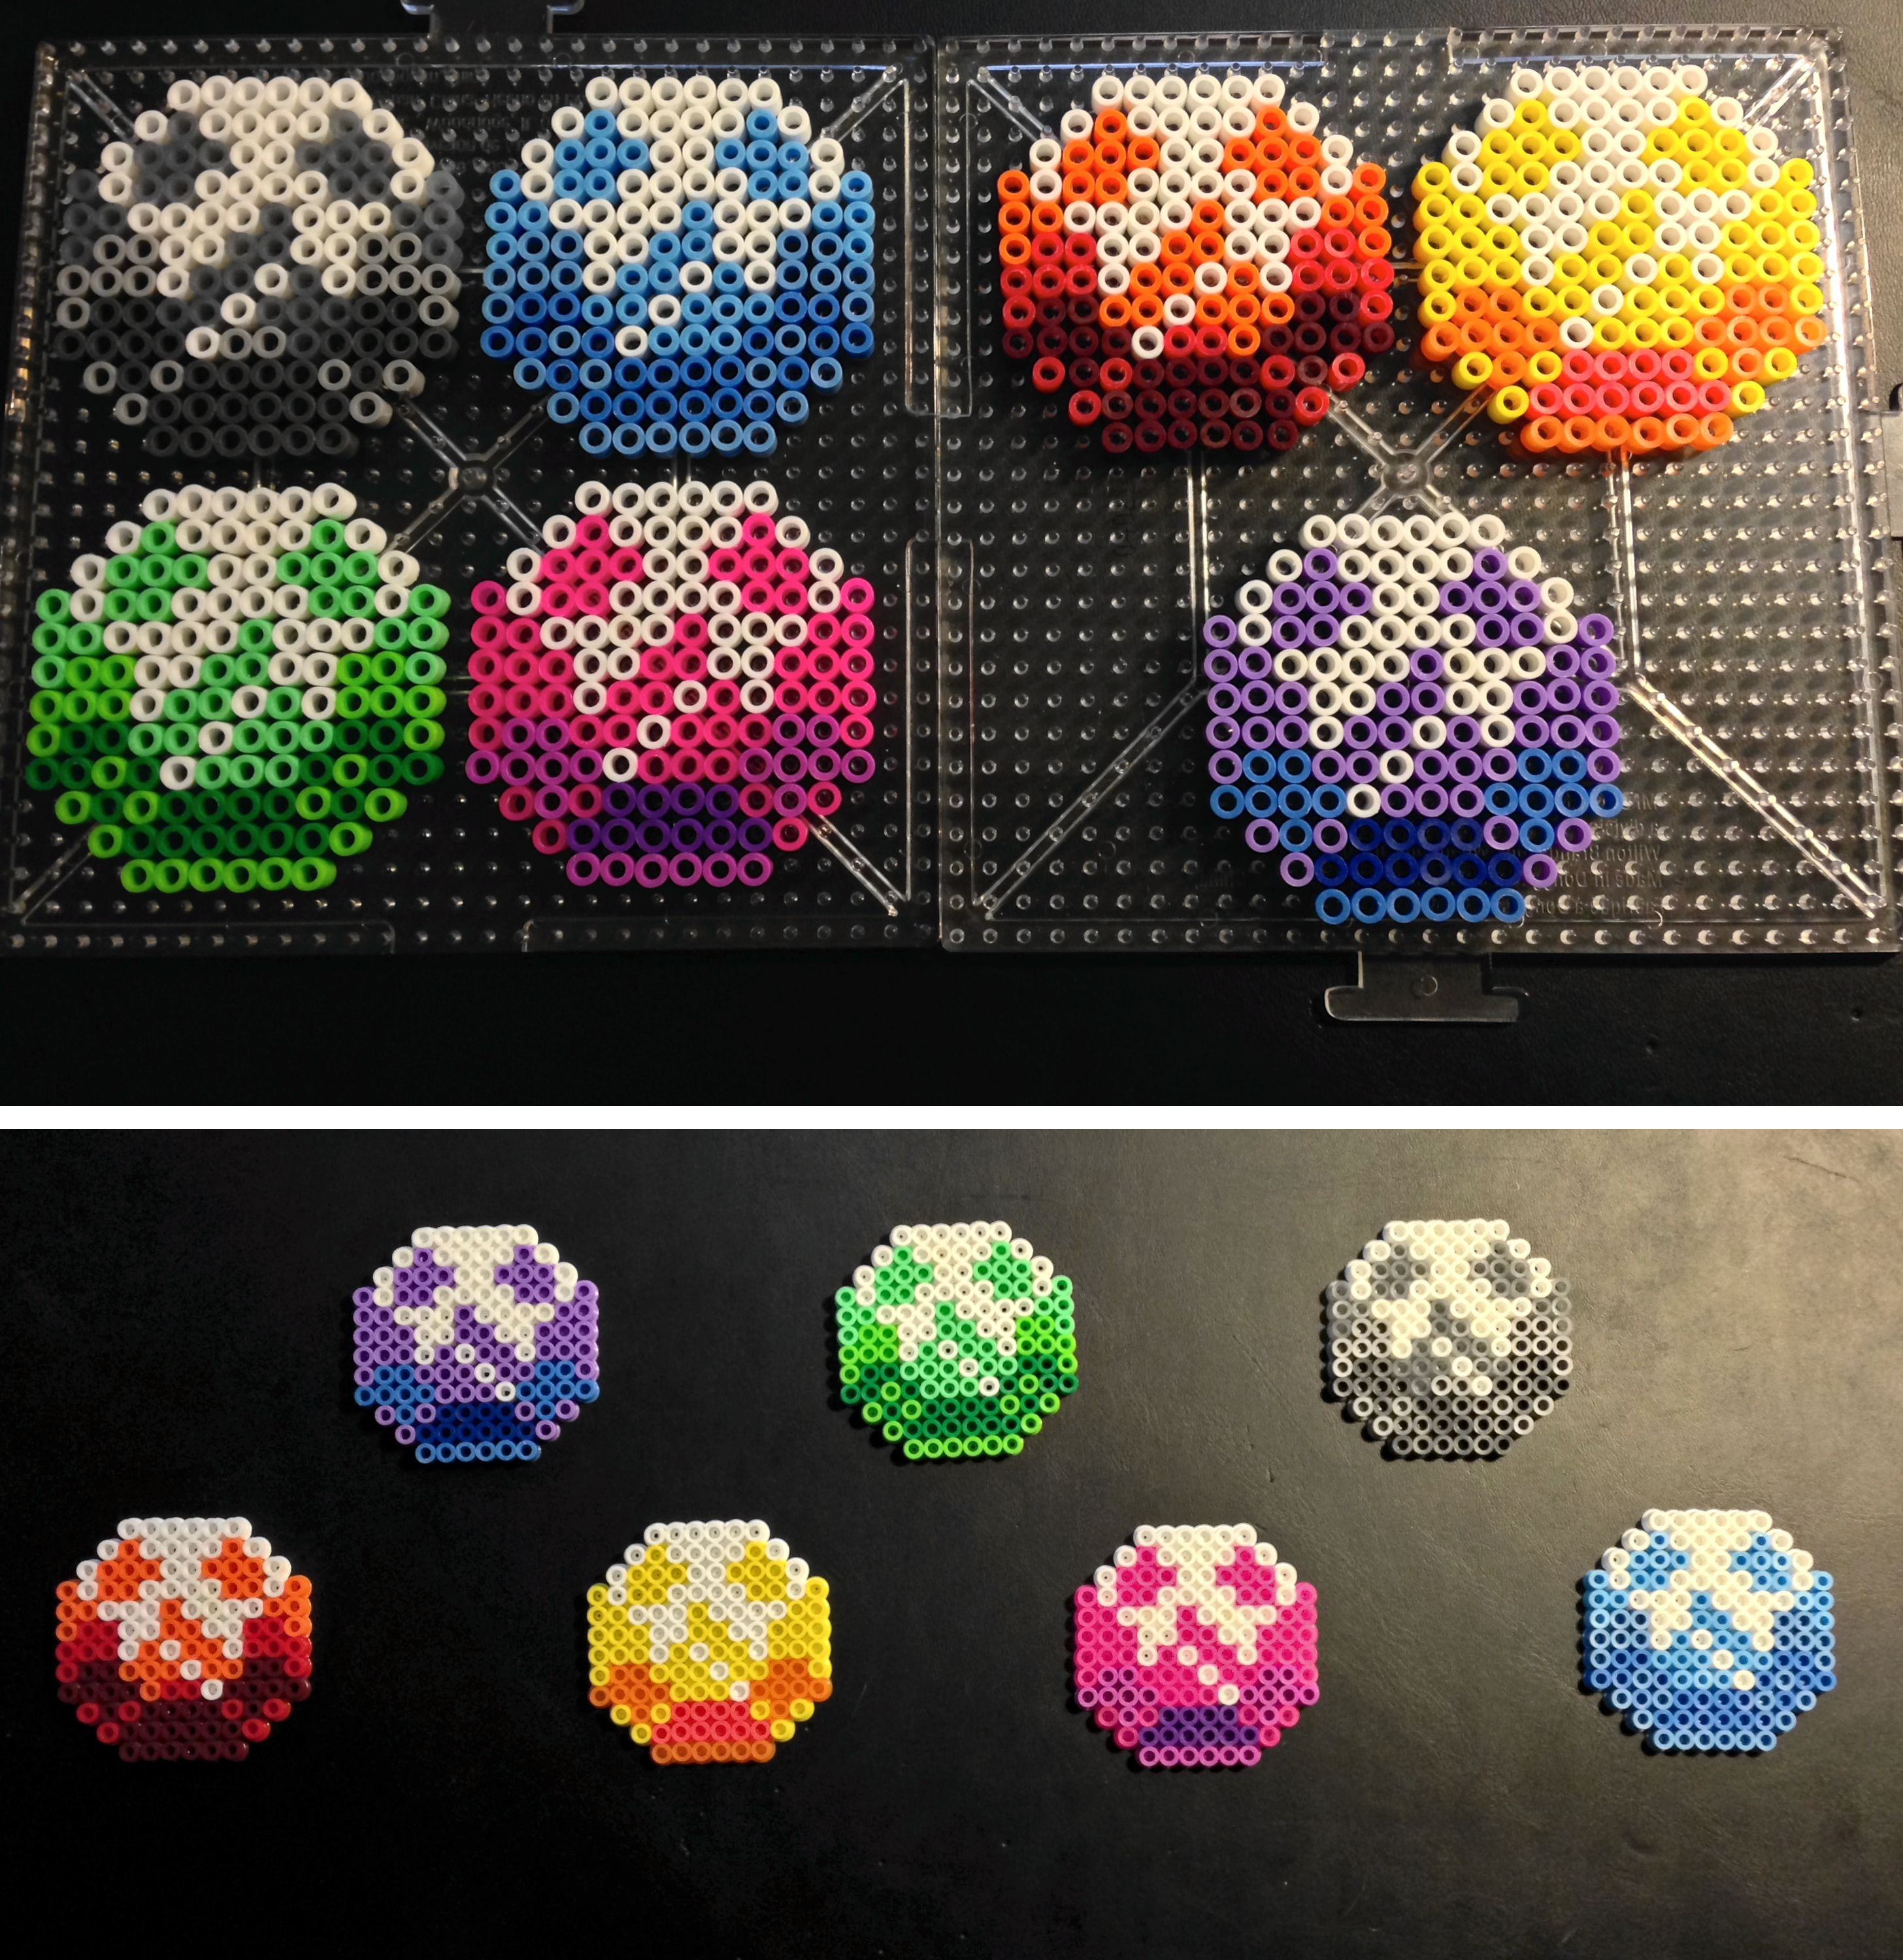 Chaos Emeralds Sonic The Hedgehog 2 Super Sonic Completed Perler